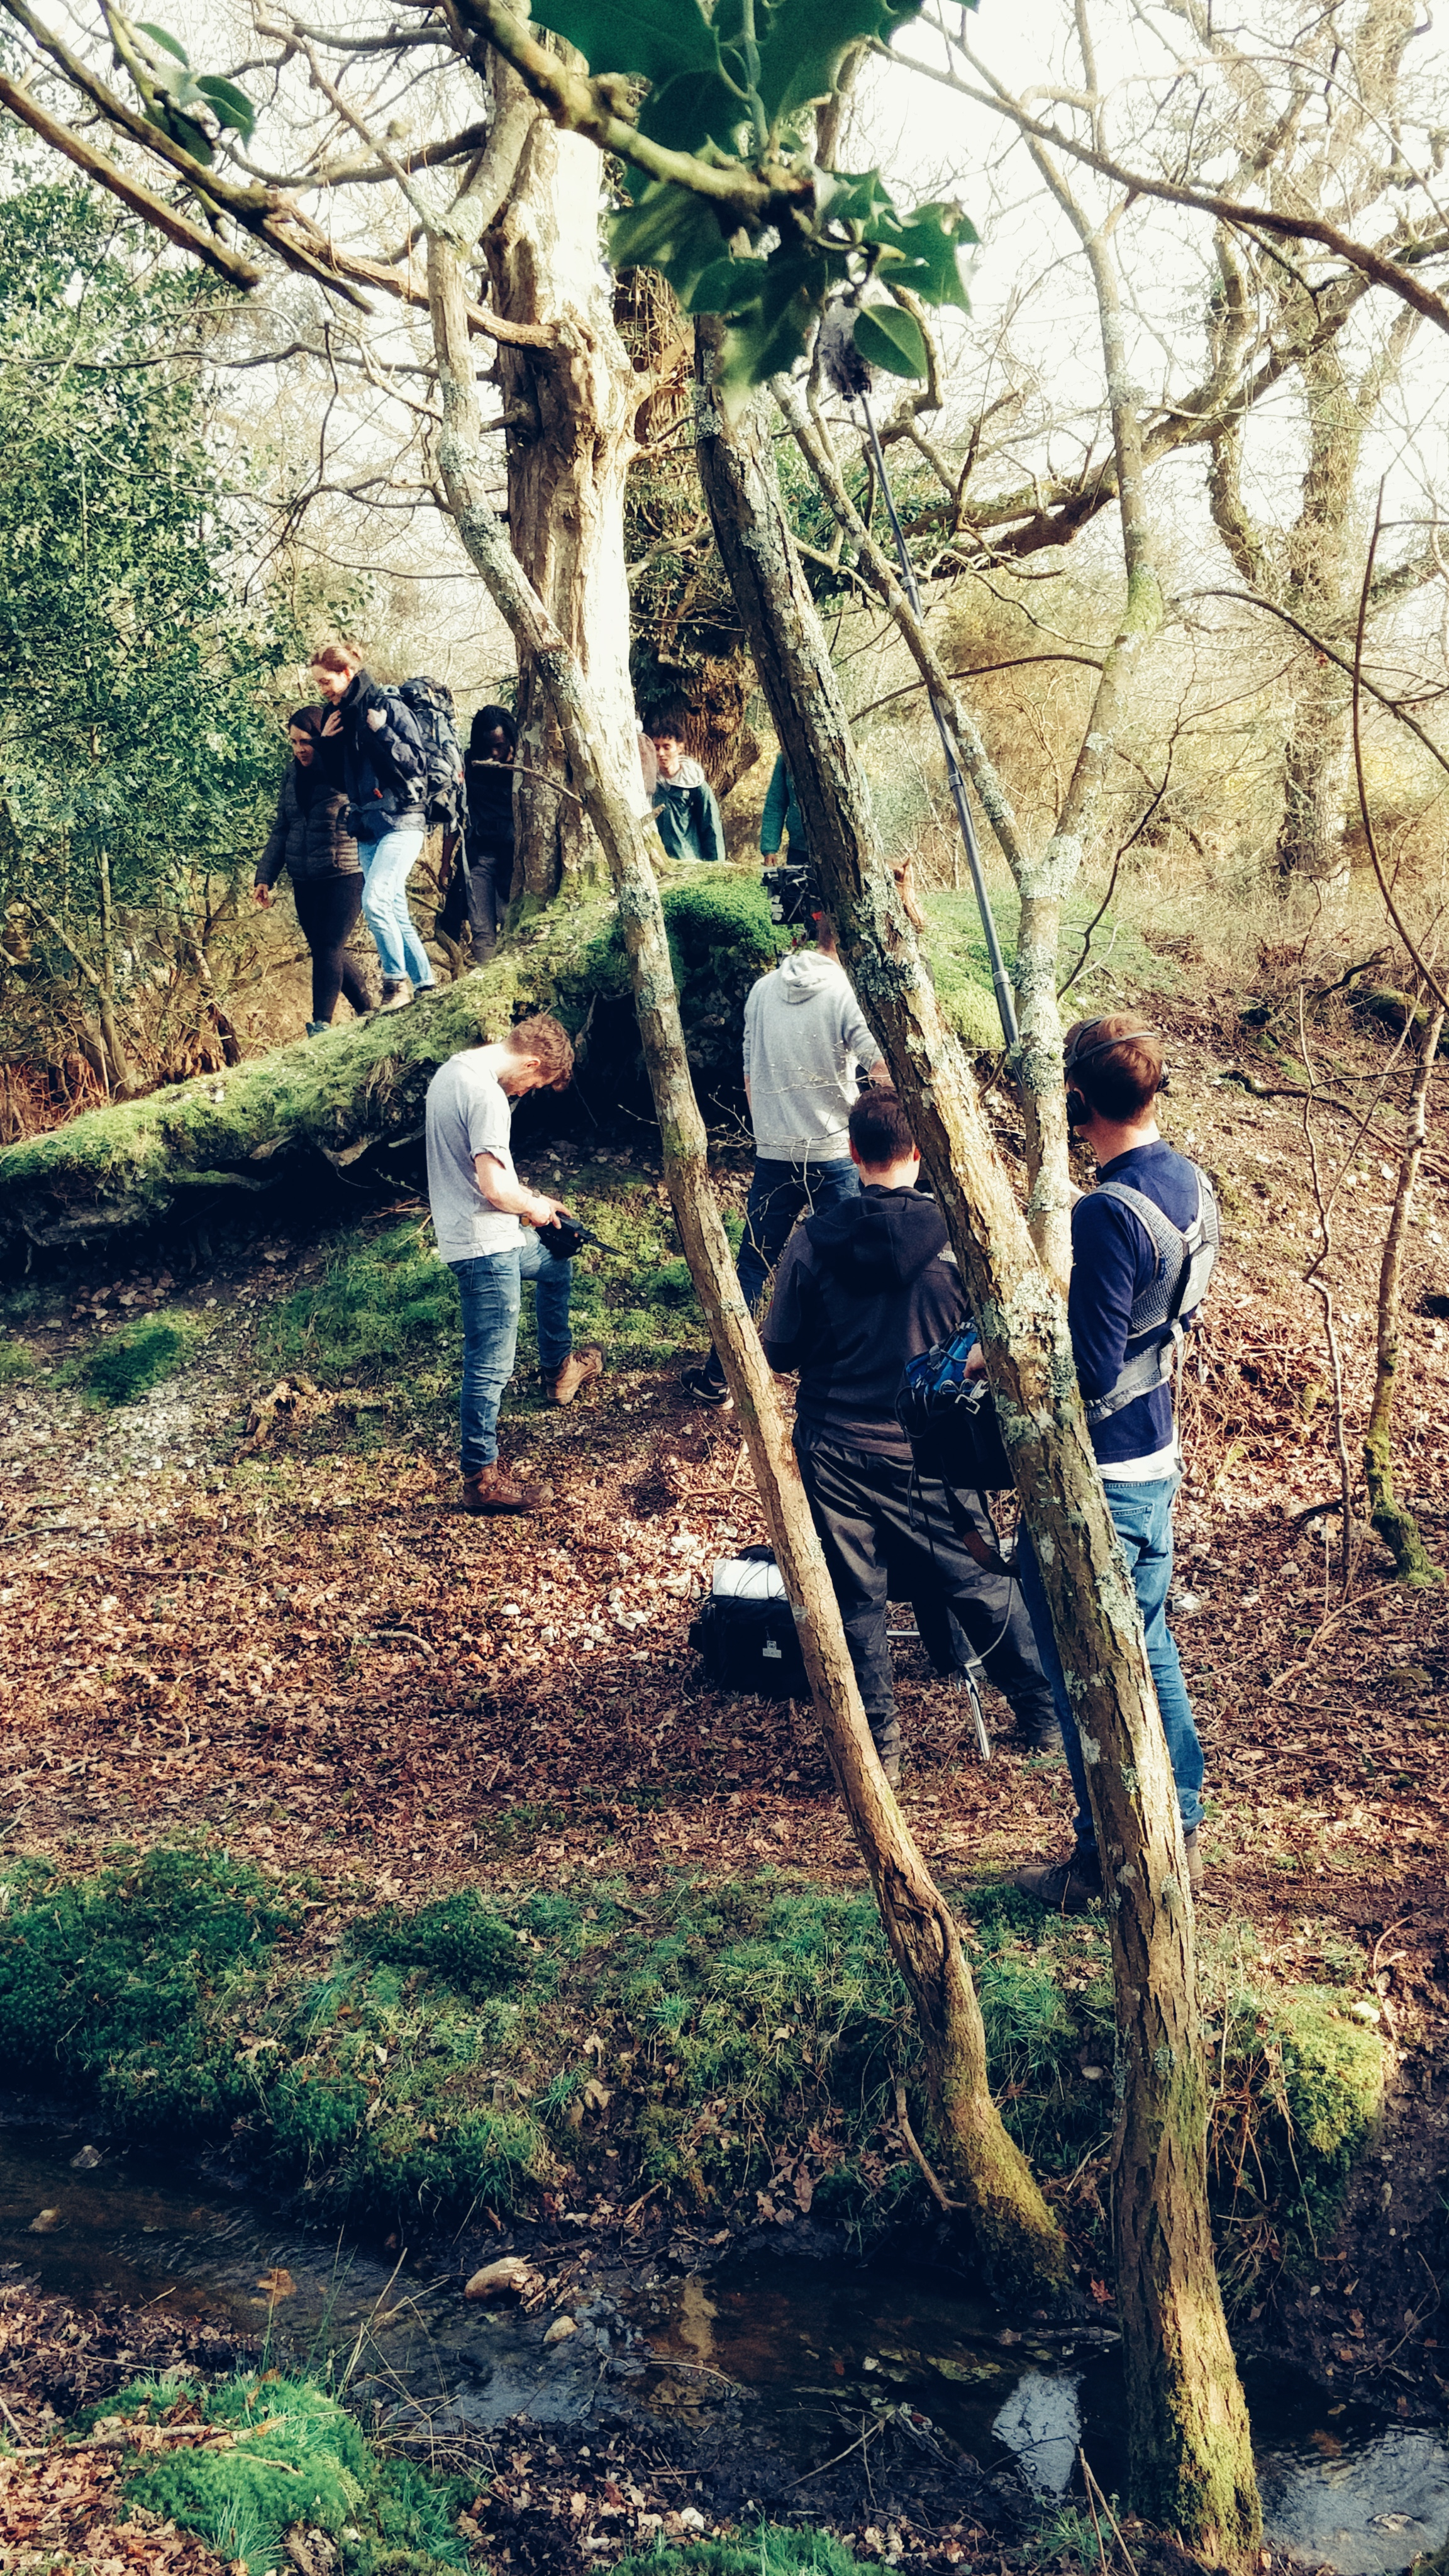 If you go into the woods today… expect a busy camera crew!